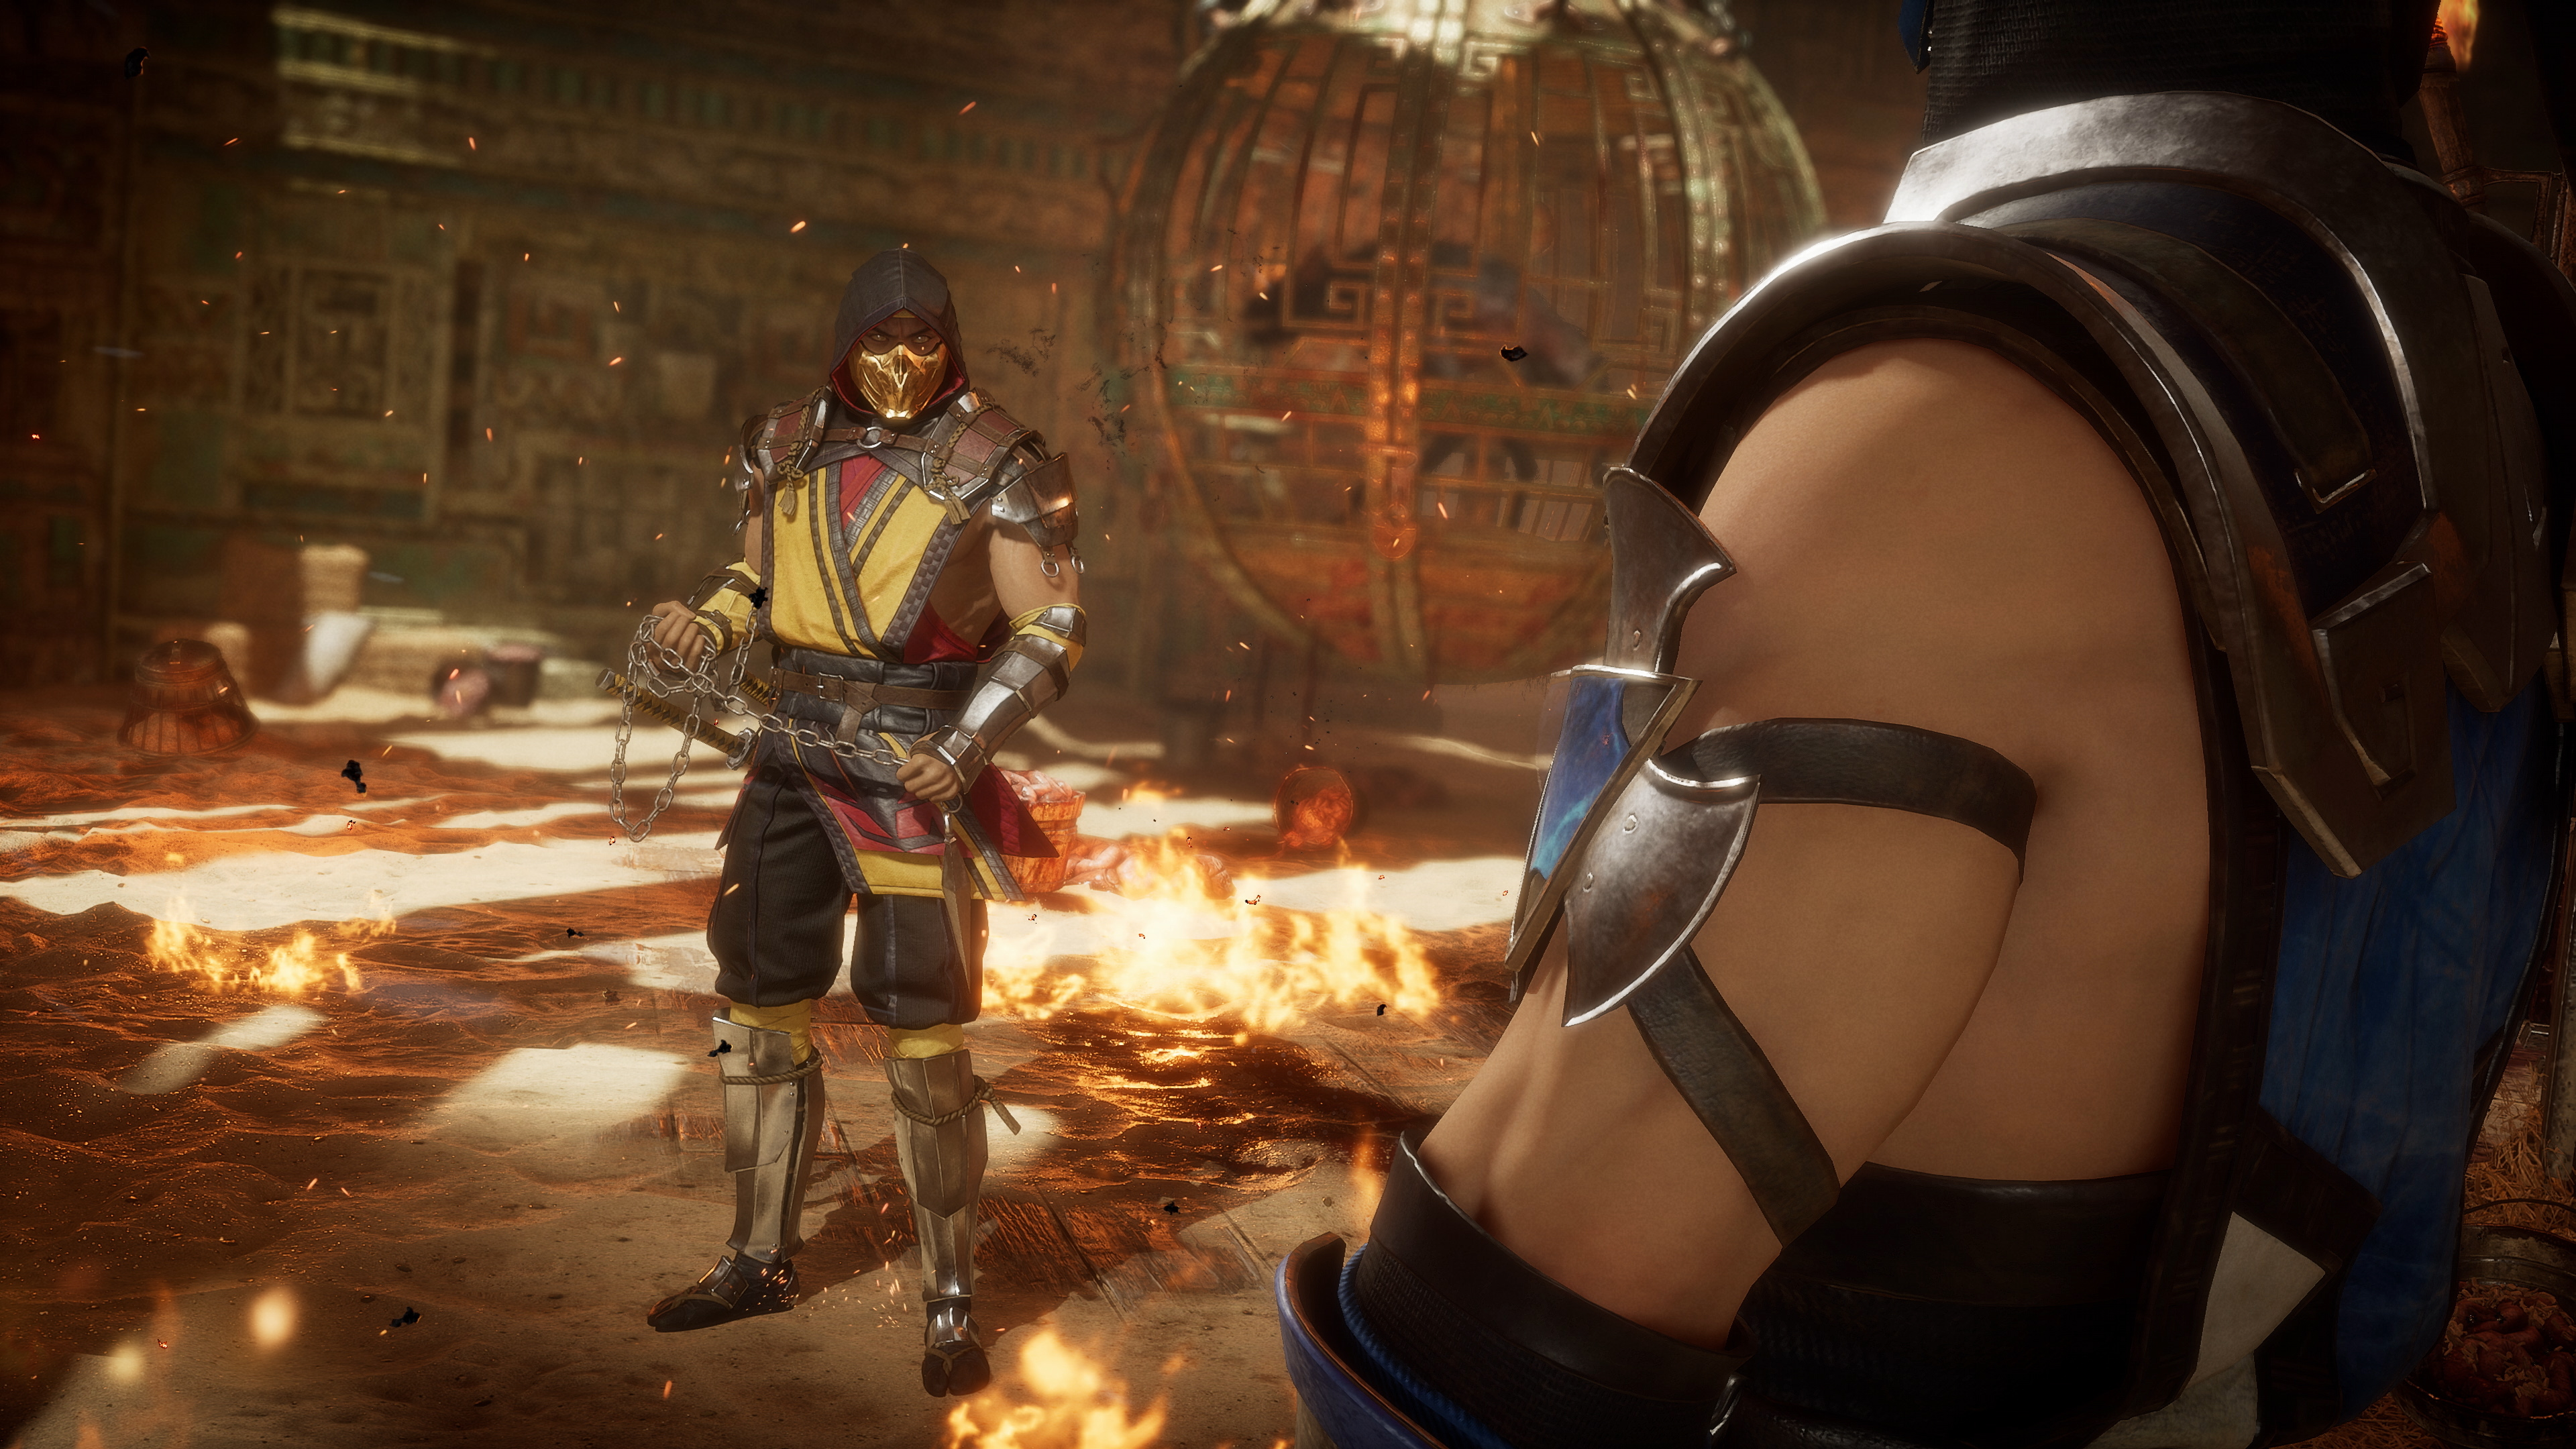 From handheld to 4K: Mortal Kombat 11 delivers on all